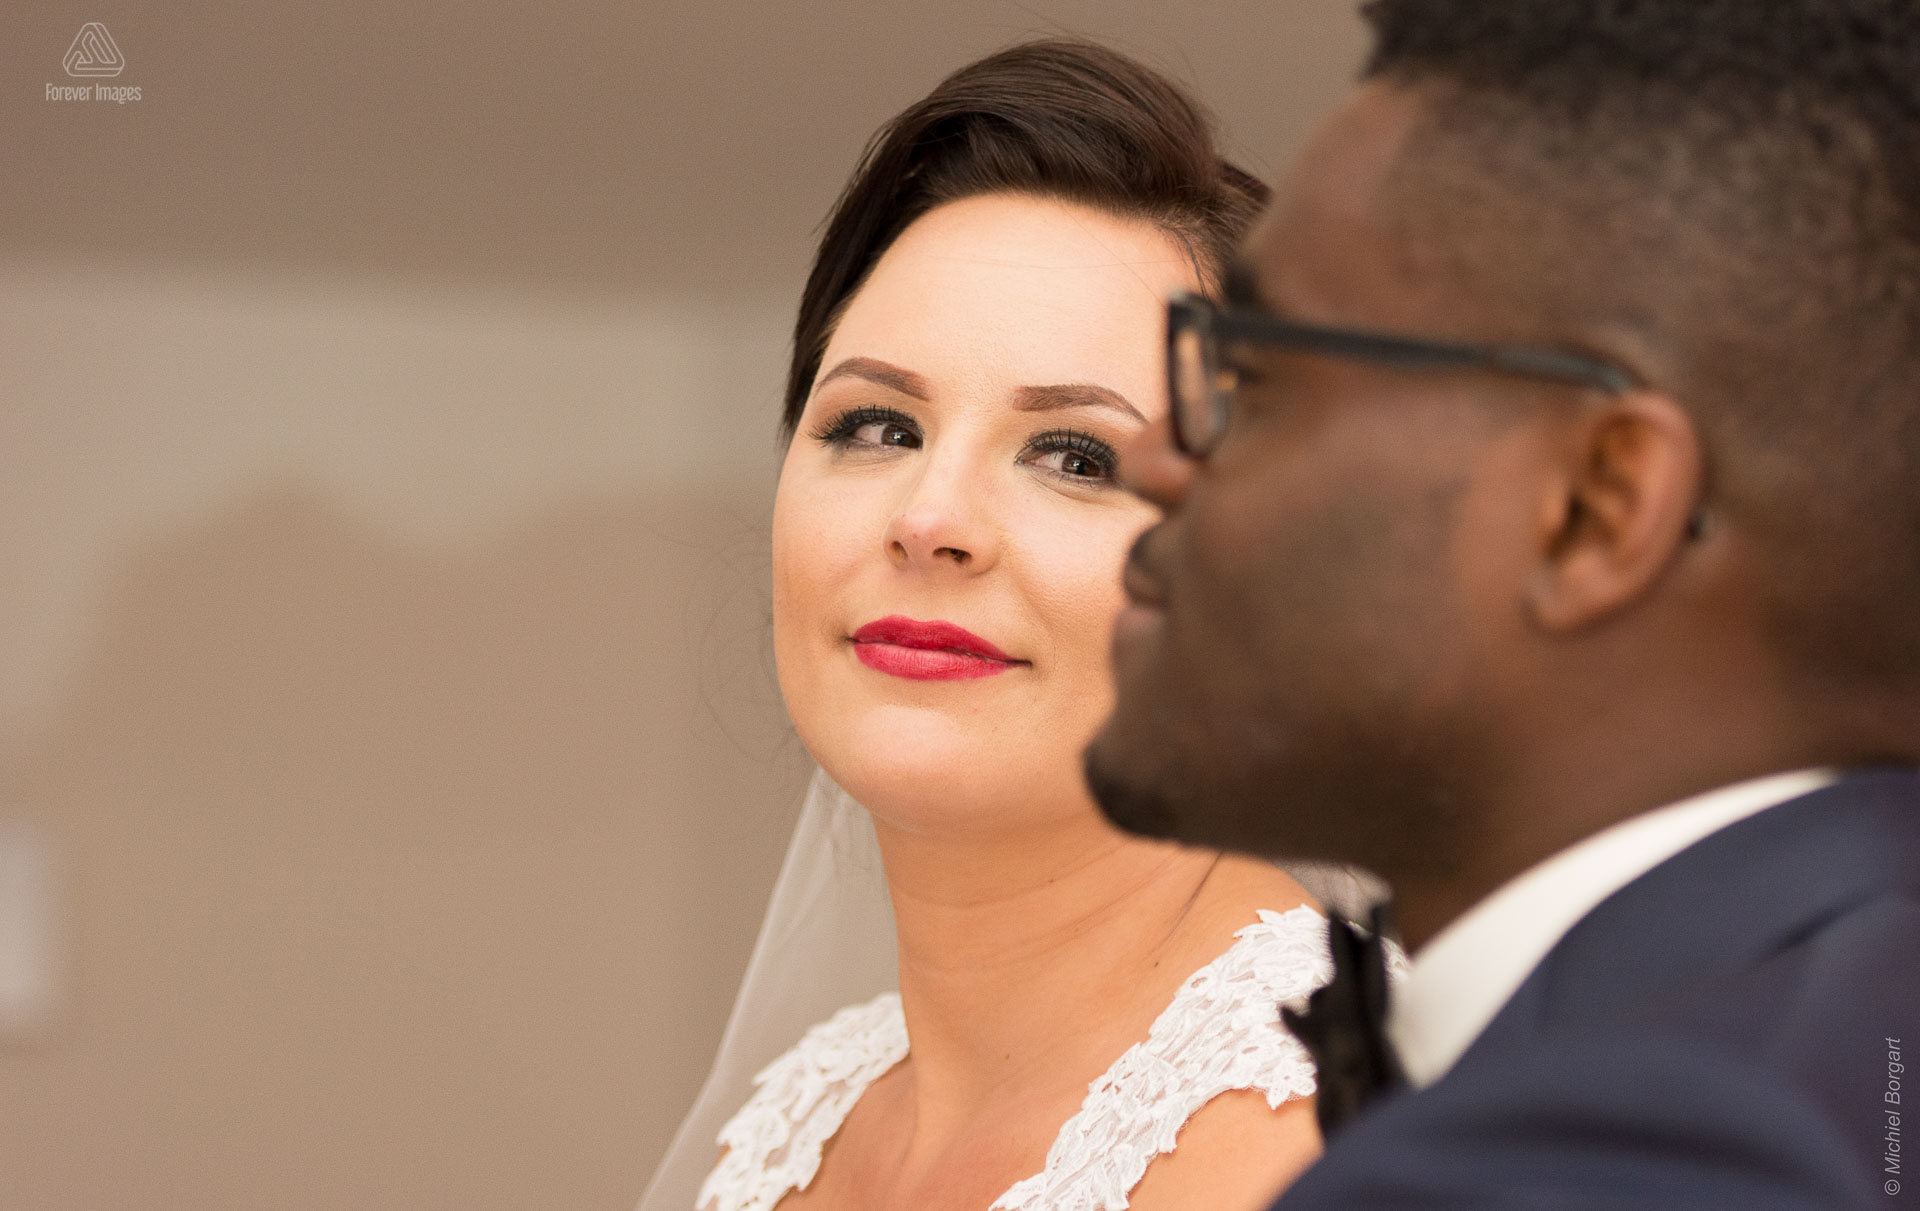 Bridal photo portrait photo close up bride looks groom in love Amsterdam | Clarence Sabrina Versteeg | Wedding Photographer Michiel Borgart - Forever Images.